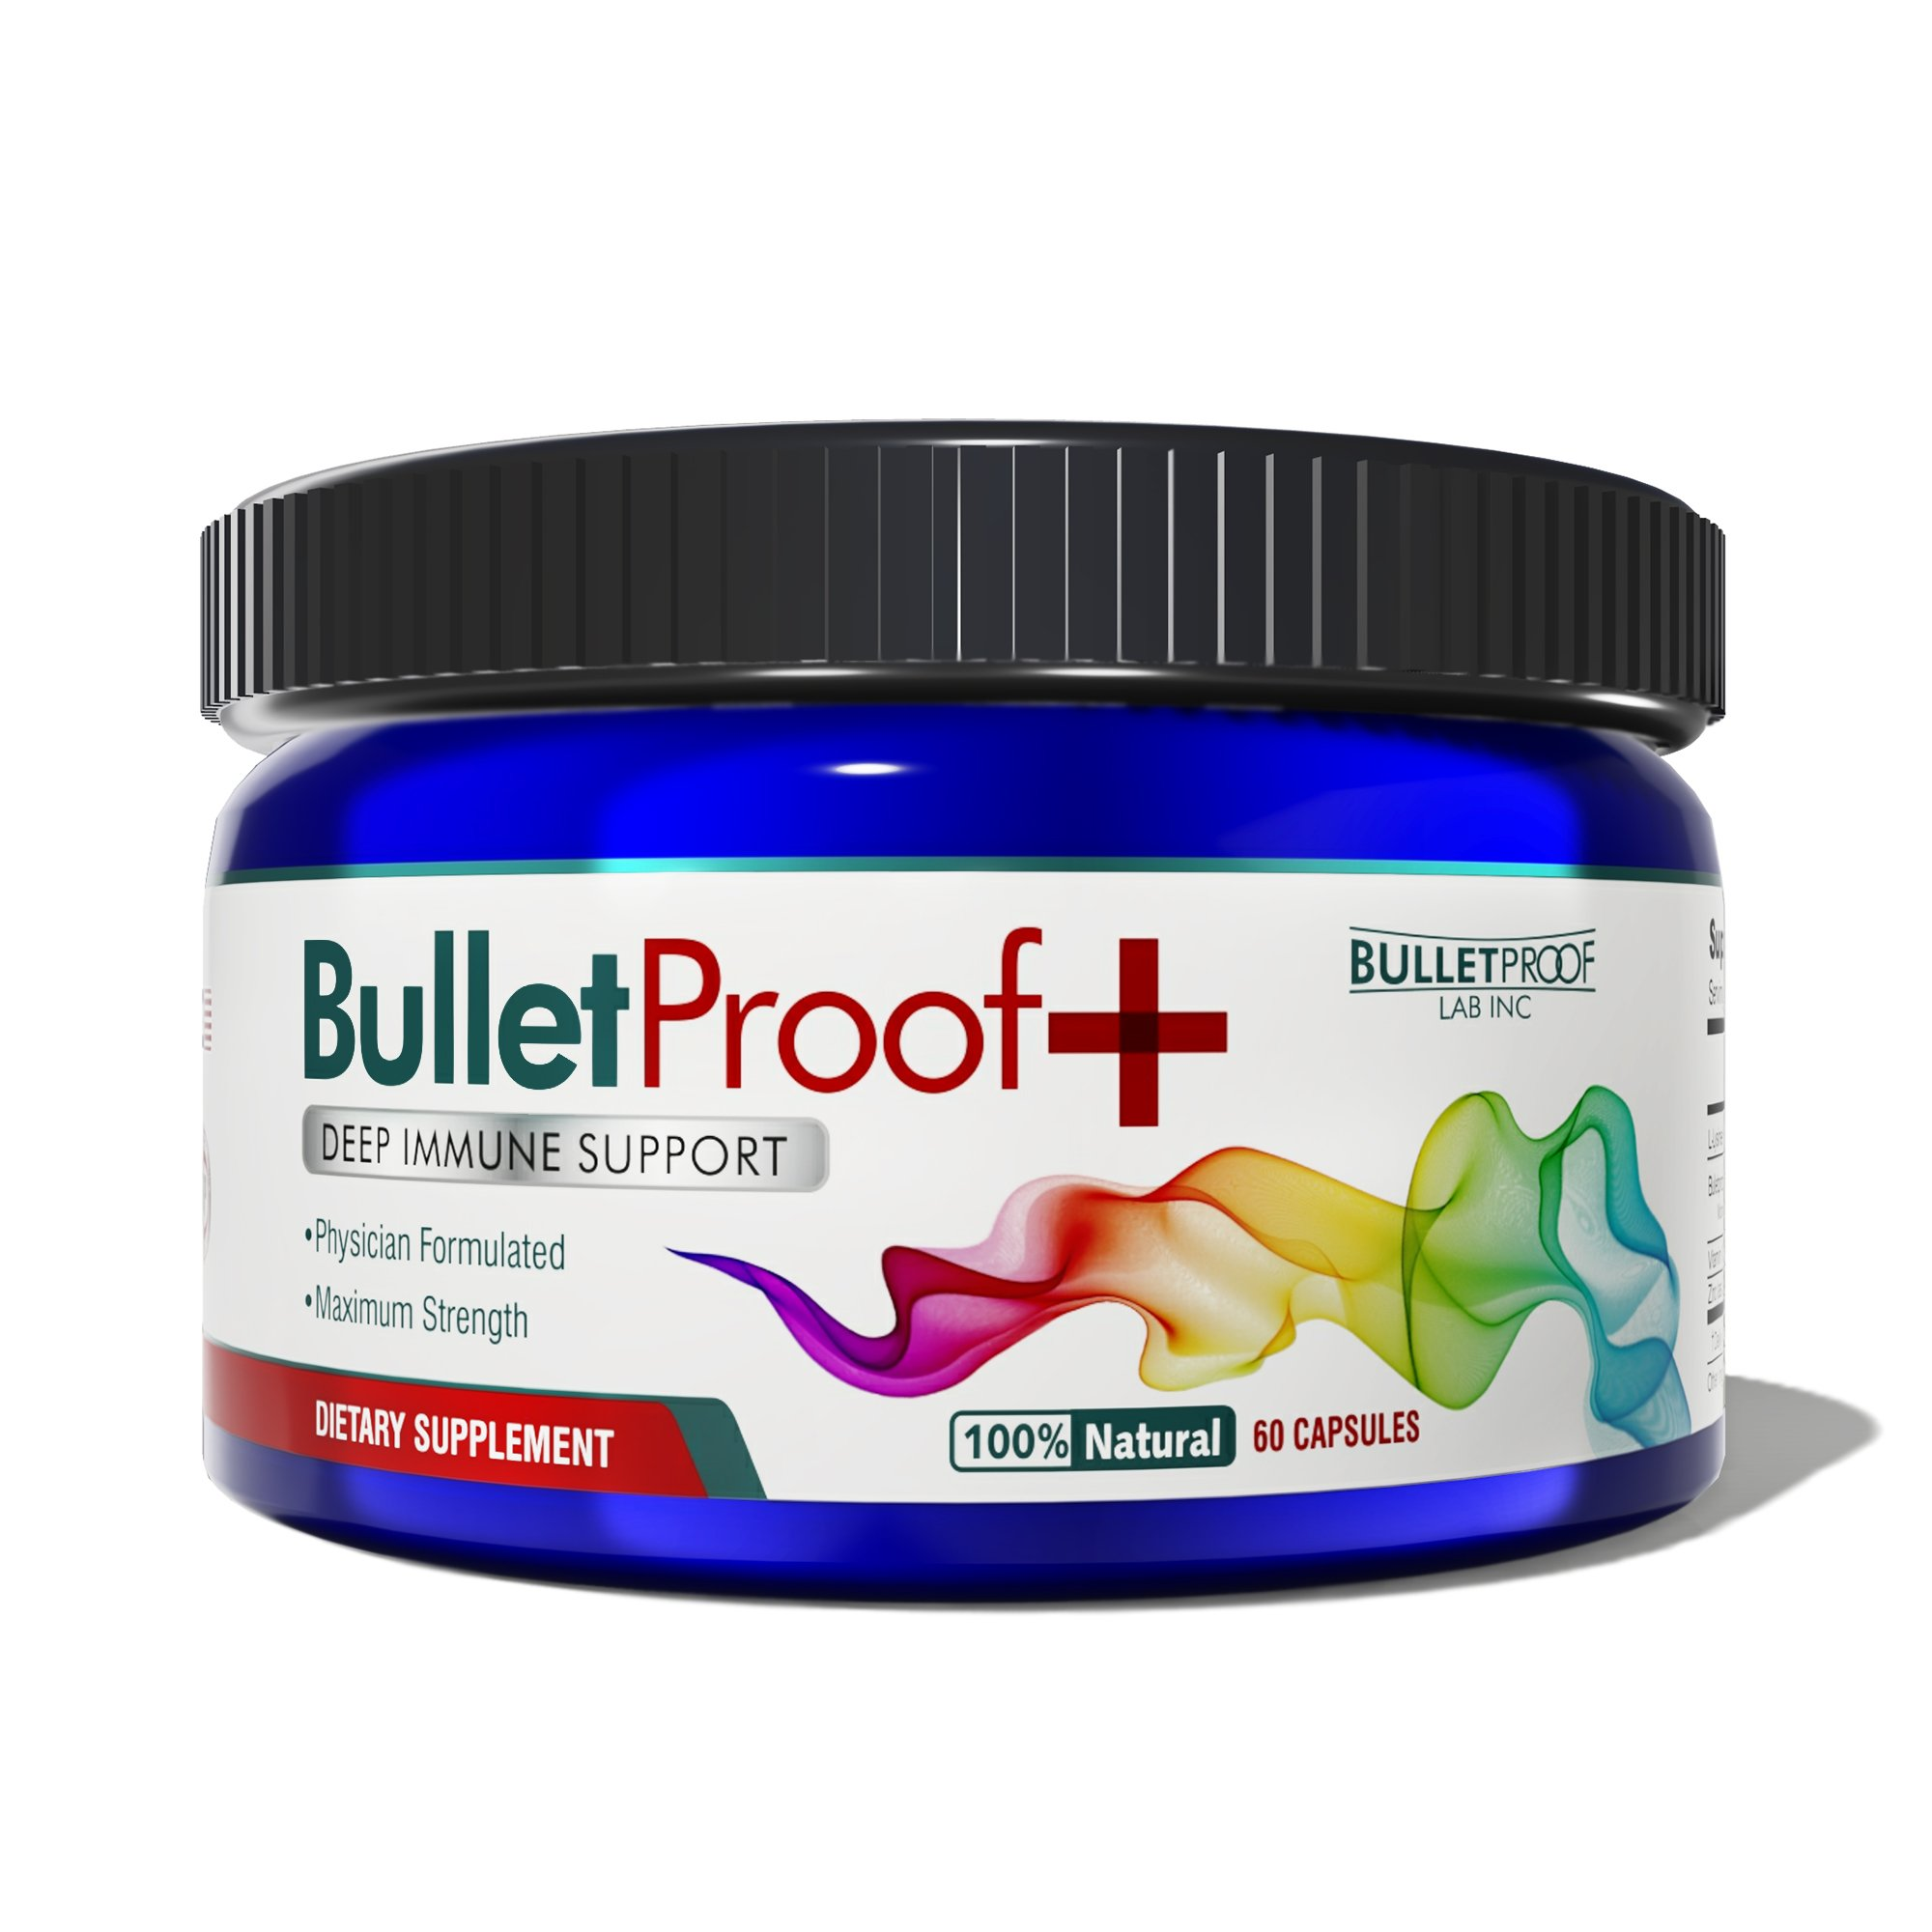 BULLETPROOF+ herpes and shingles treatment - formulated to shorten healing time and suppress future outbreaks   Herpes and Shingles Supplement by BulletProofPlus Lab Inc